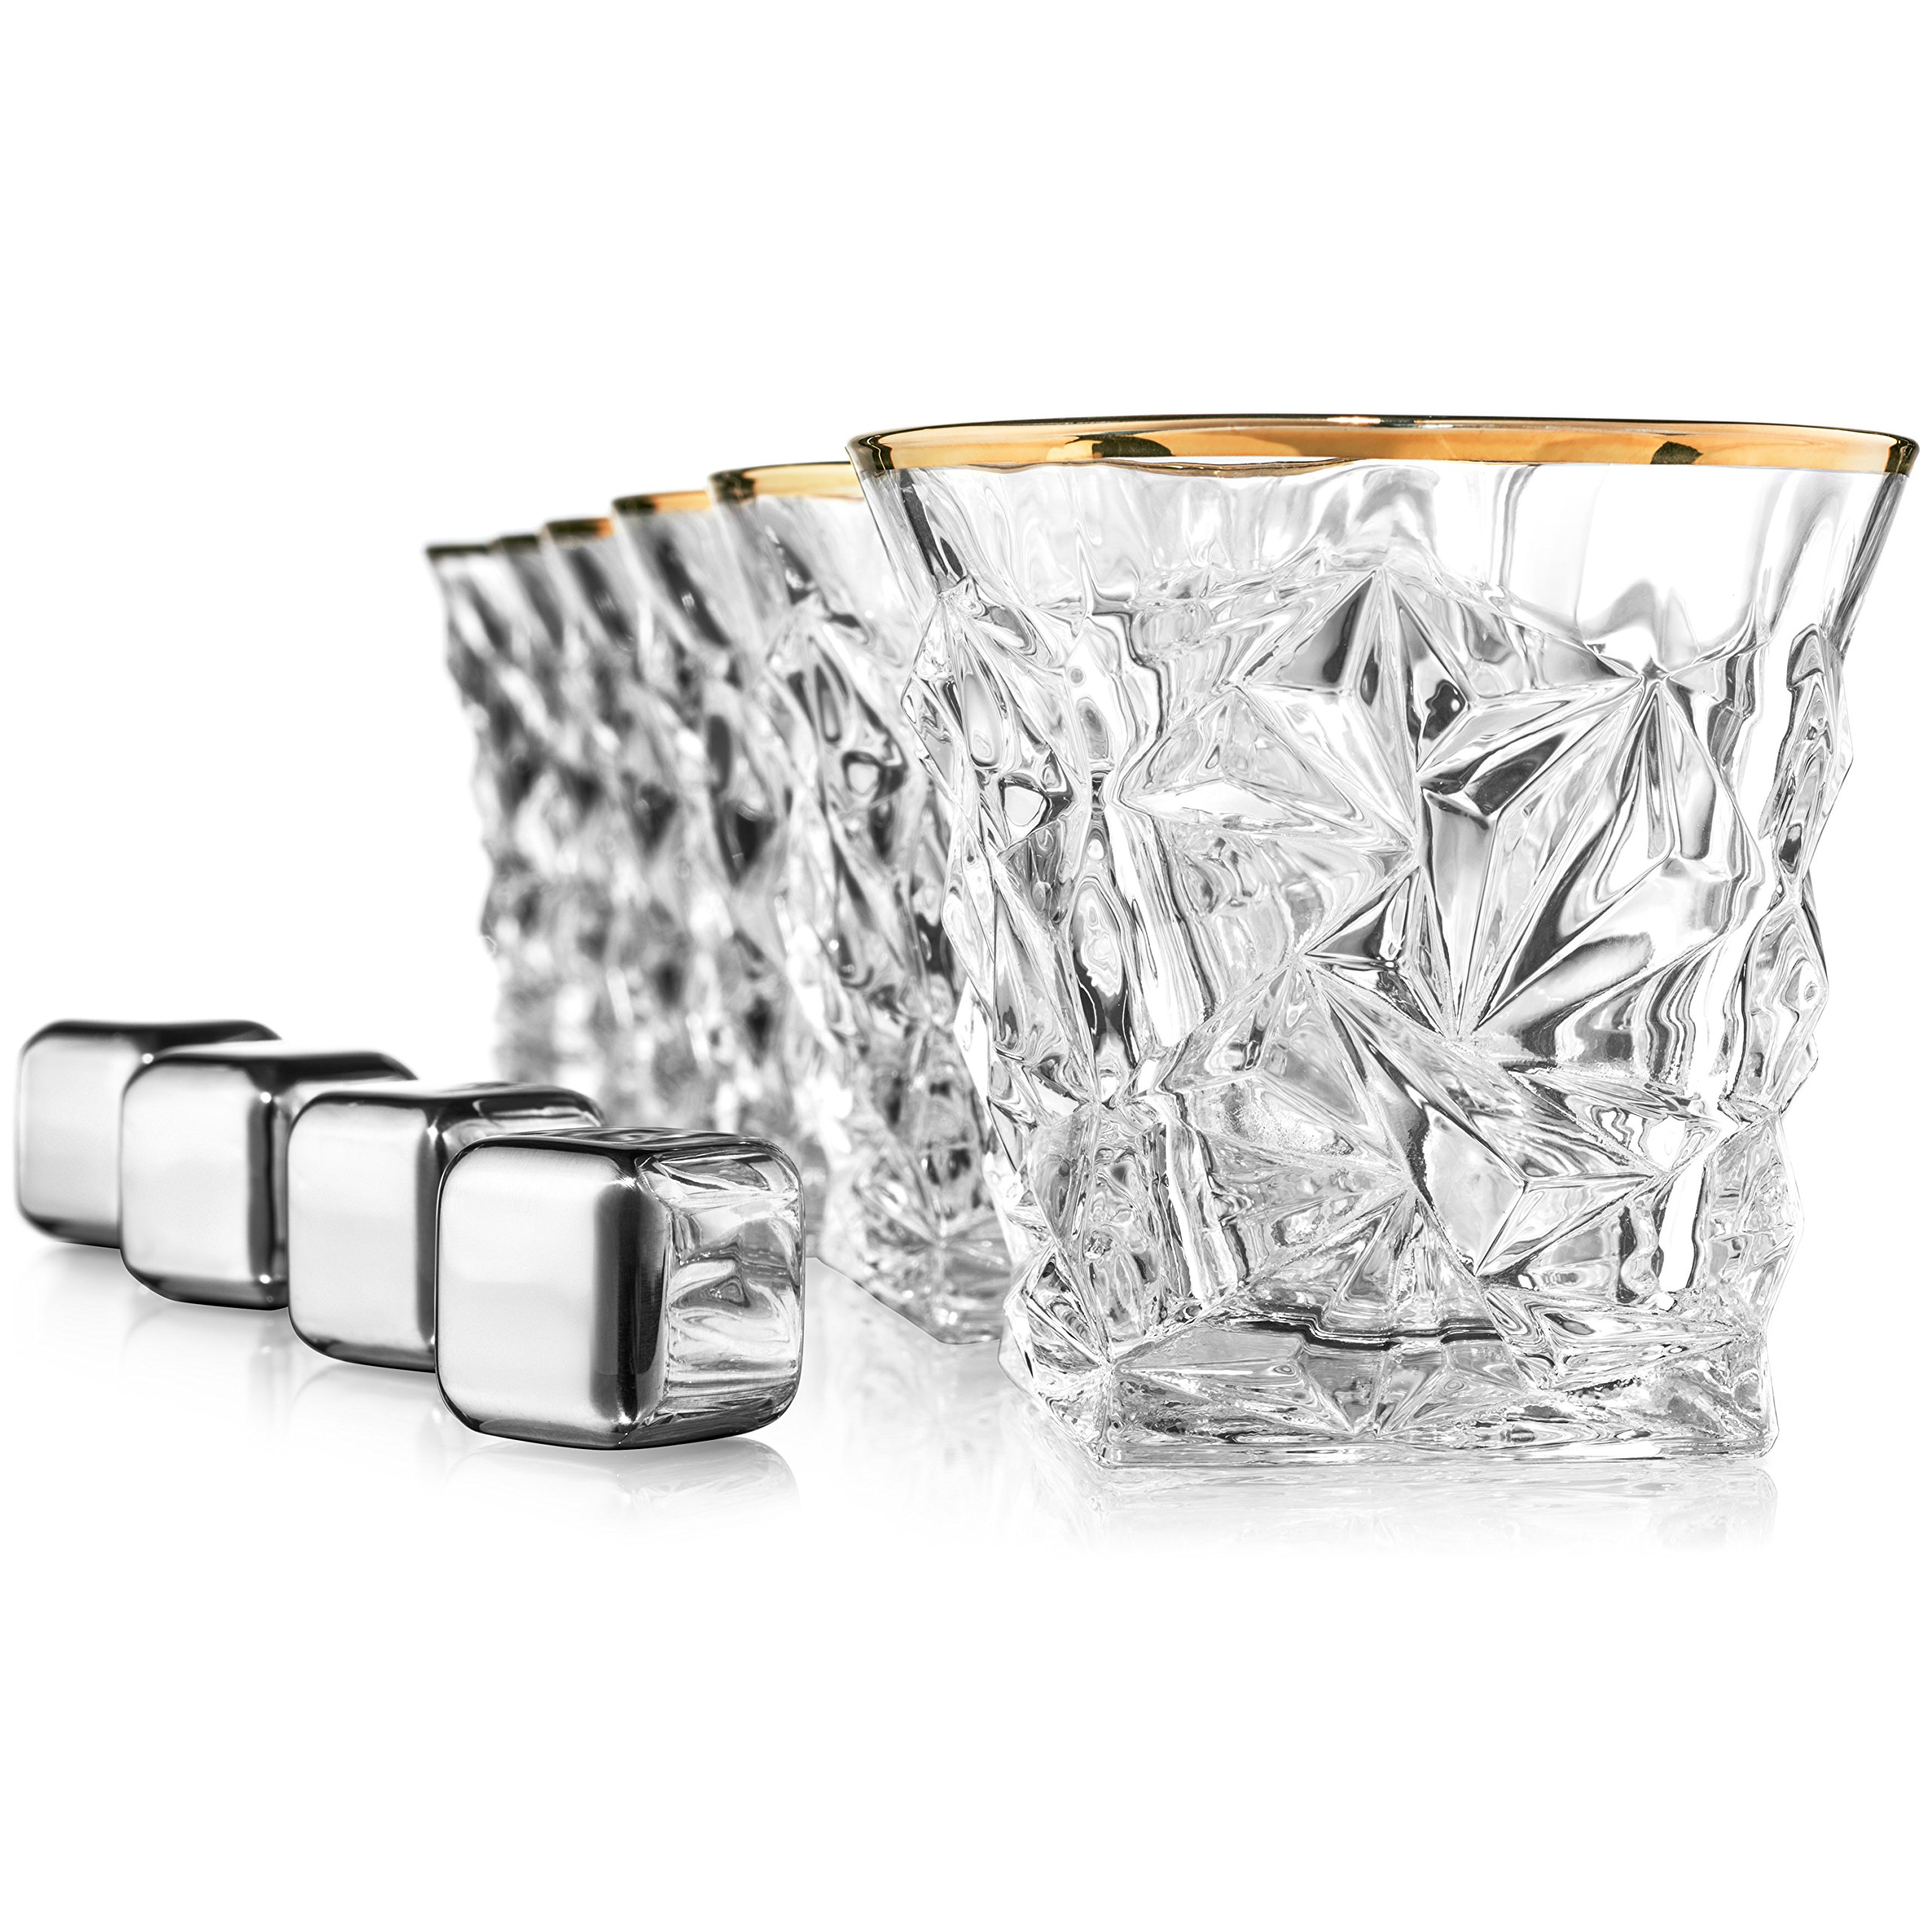 Posh Five Whiskey Glasses Set of 6 Diamond Scotch Glasses + 4 Stainless Steel Whiskey Stones by Posh Five Trading Co (Image #9)